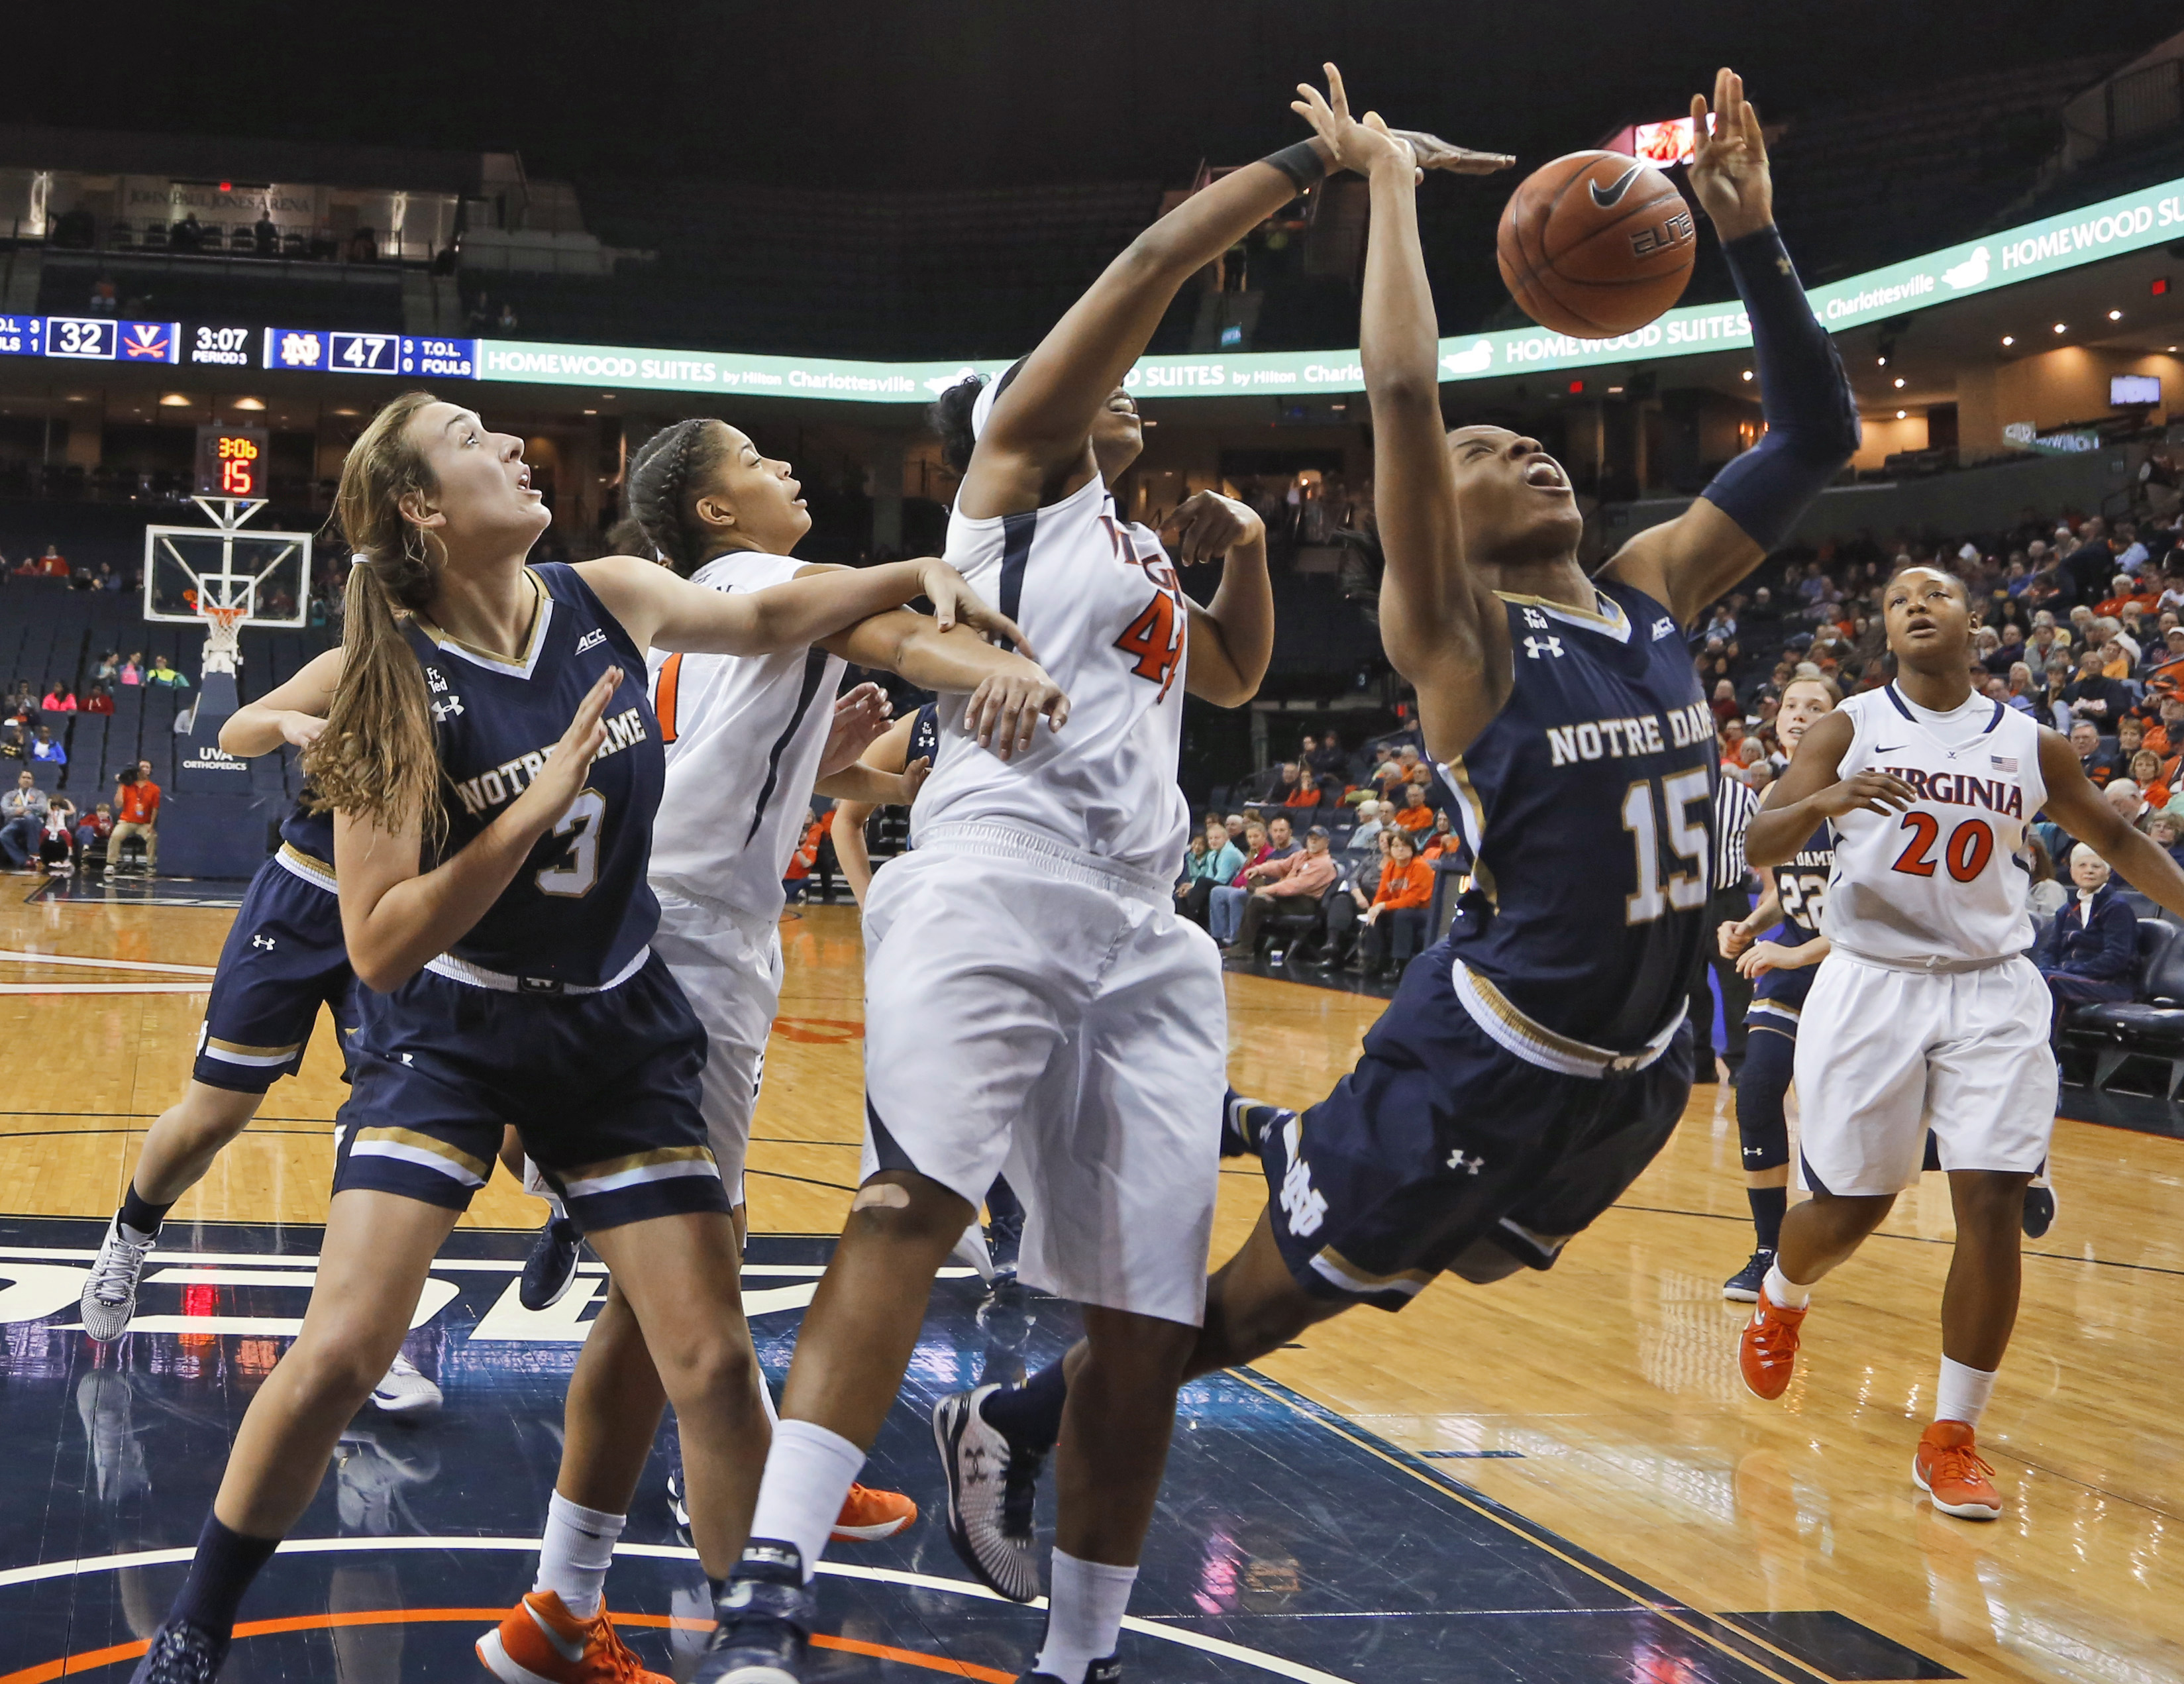 Notre Dame guard Lindsay Allen (15) reaches for a rebound as Virginia forward Sydney Umeri, center, closes in during the second of an NCAA college basketball game in Richmond, Va., Thursday, Jan. 7, 2016. Notre Dame won 74-46. (AP Photo/Steve Helber)